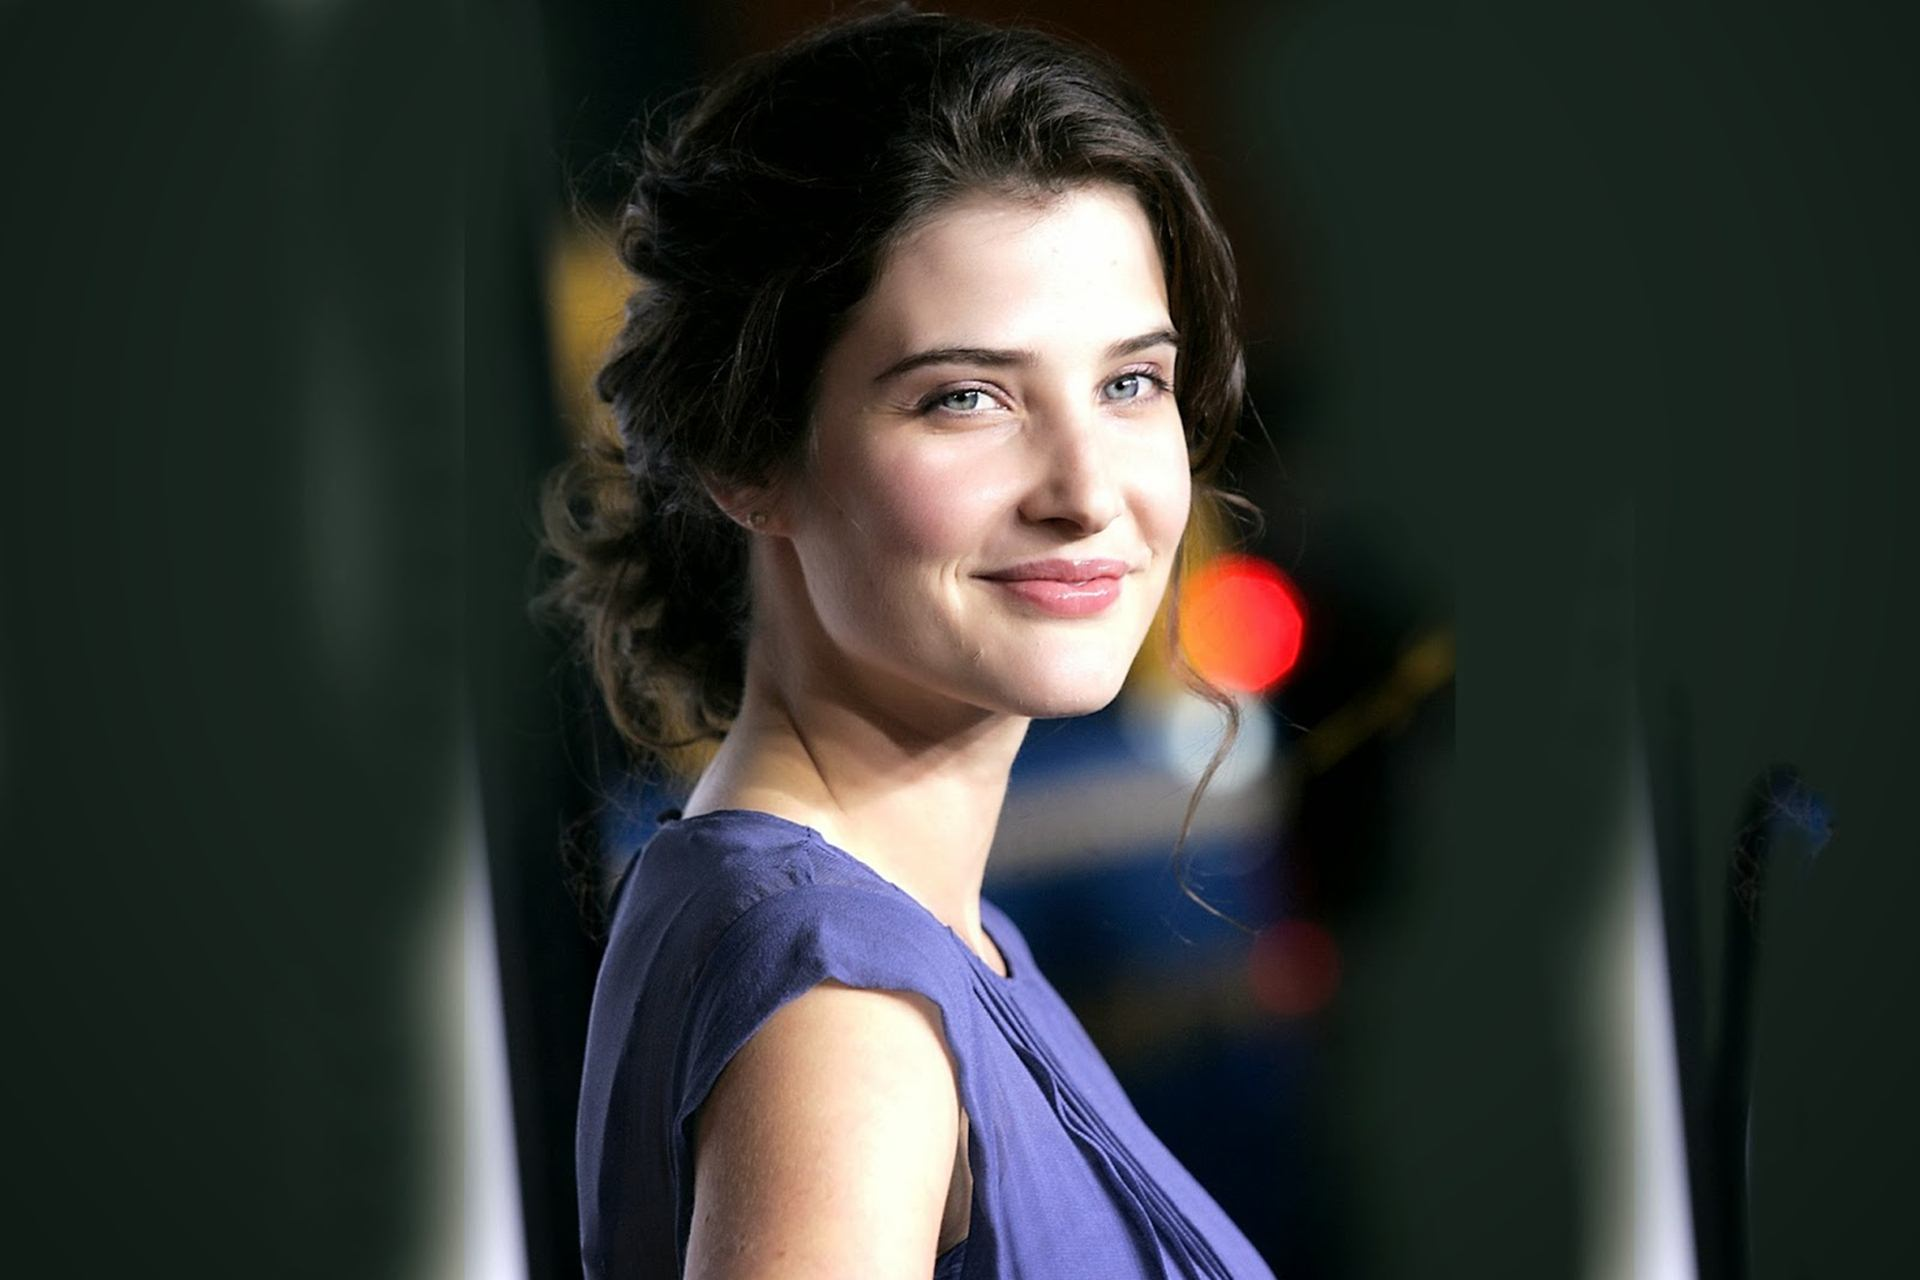 1920x1280 - Cobie Smulders Wallpapers 20